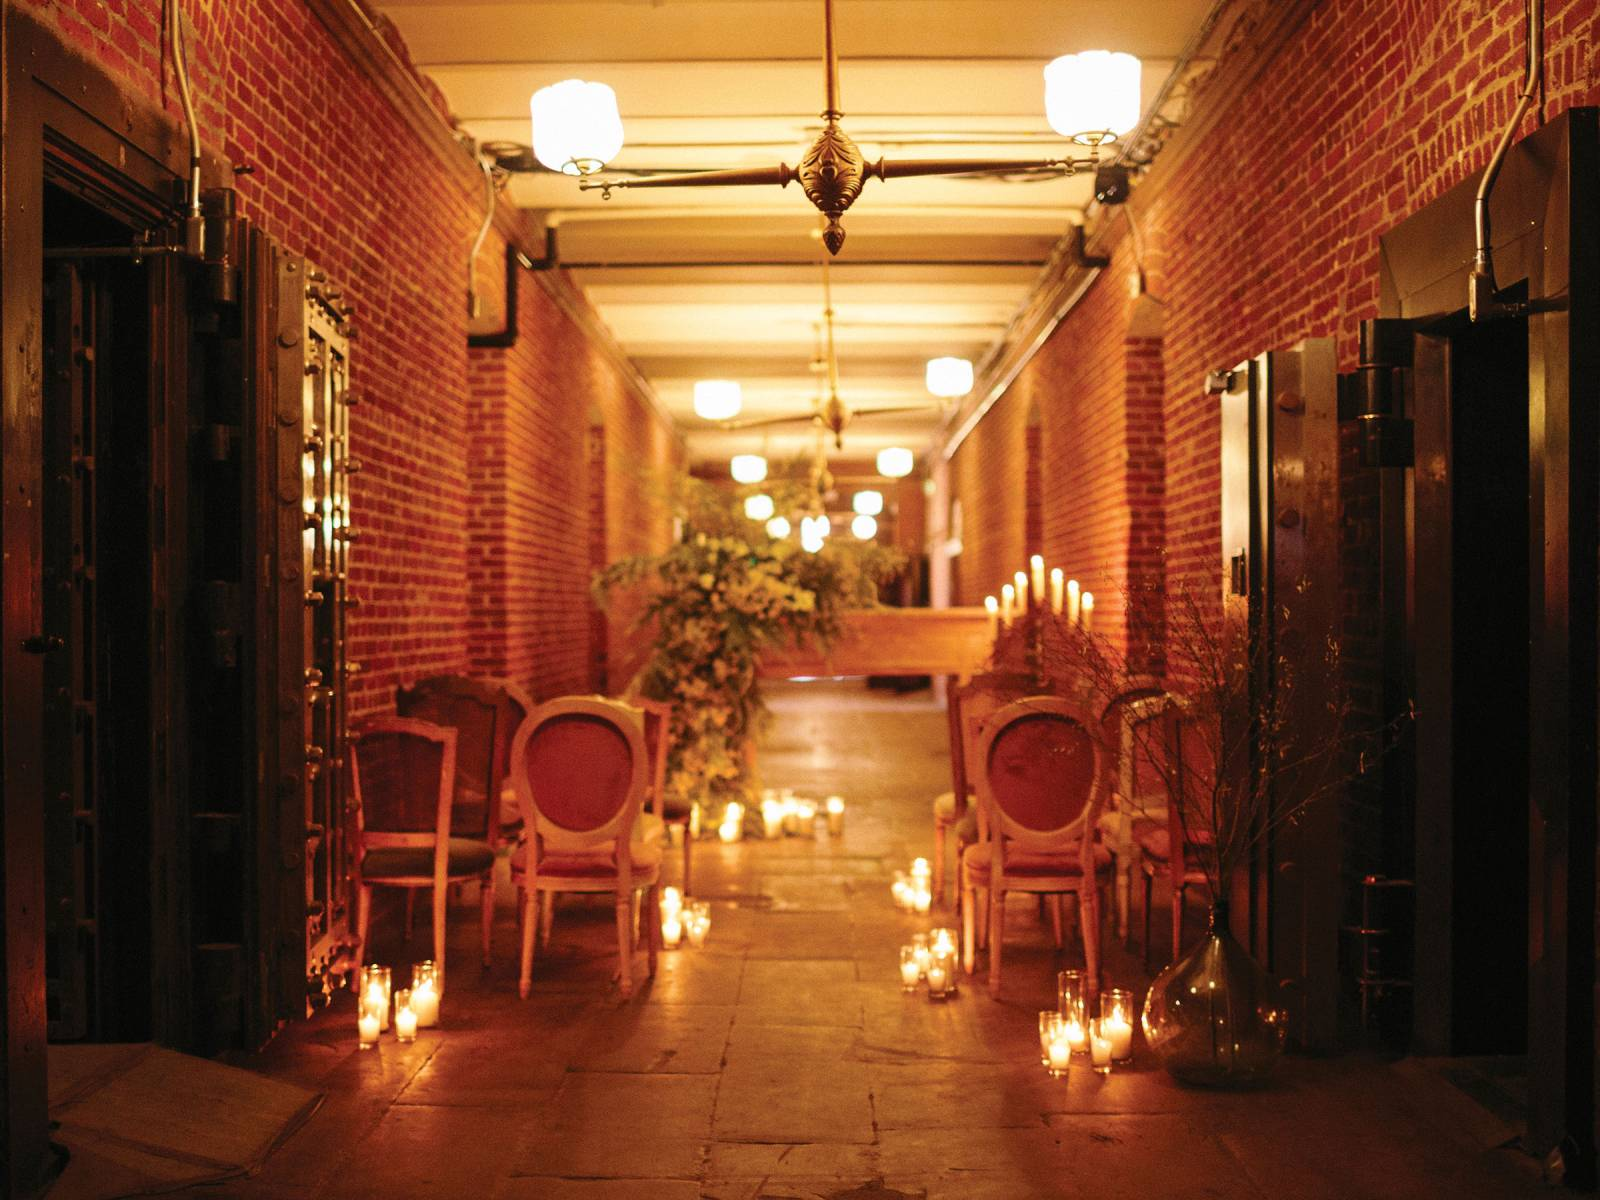 Brick corridor set-up for a ceremony with floral draped altar, seating and candles